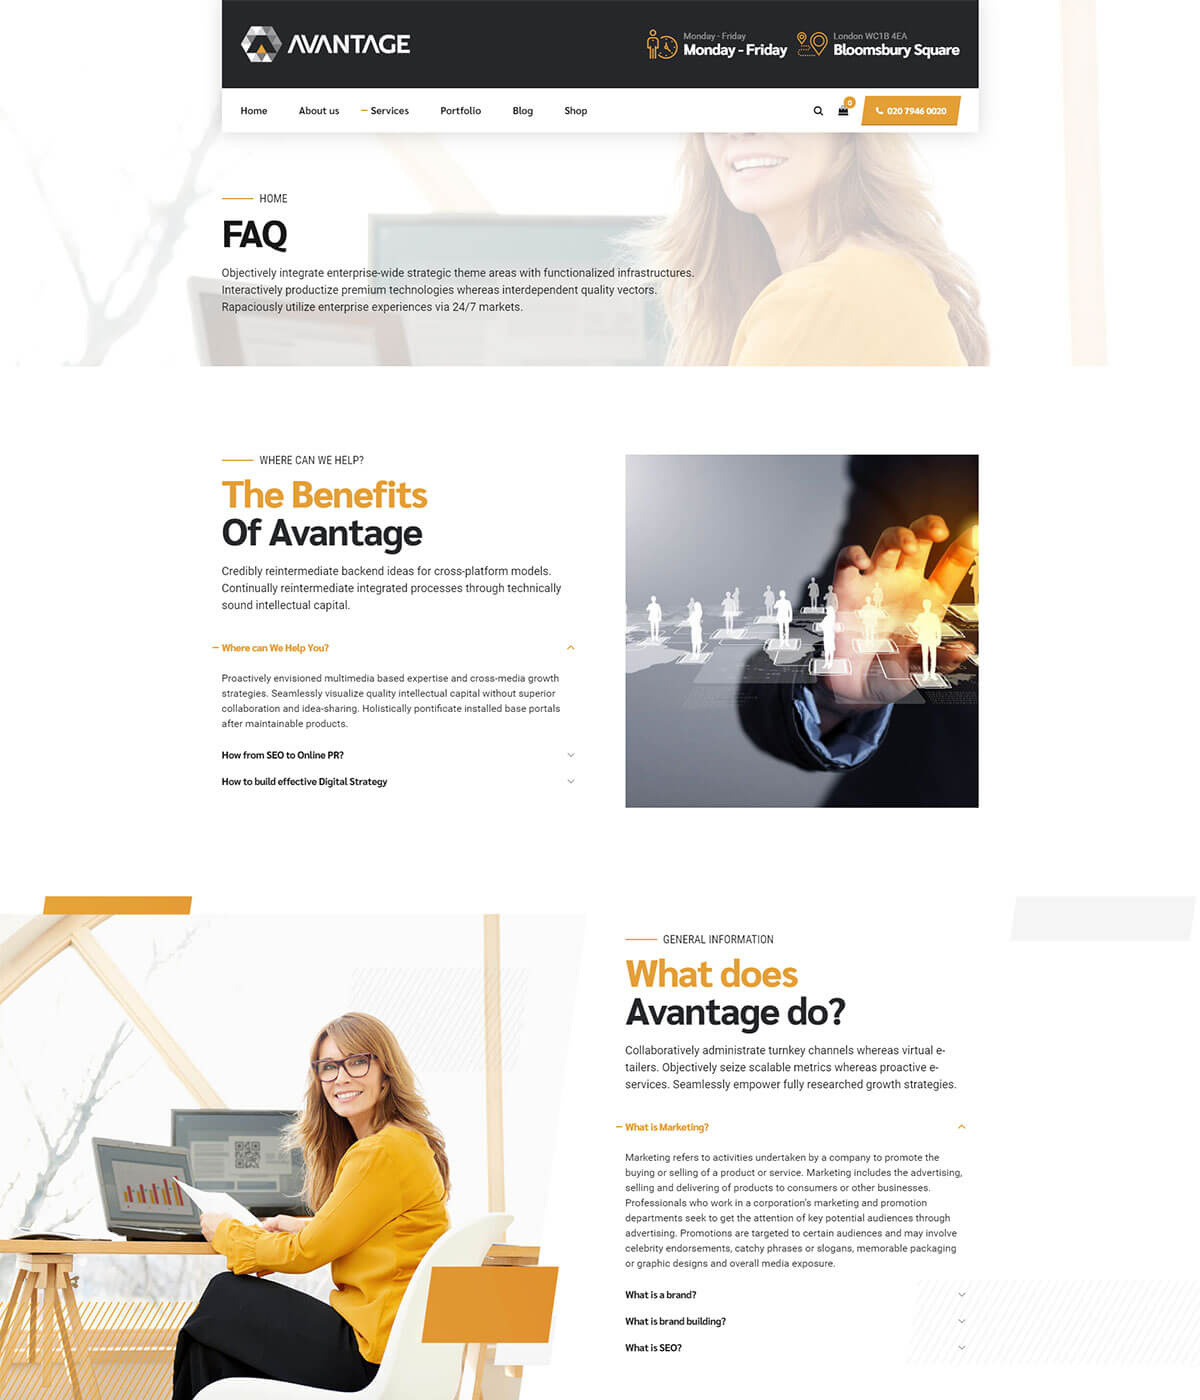 http://avantage.bold-themes.com/wp-content/uploads/2019/05/marketing-11-faq.jpg